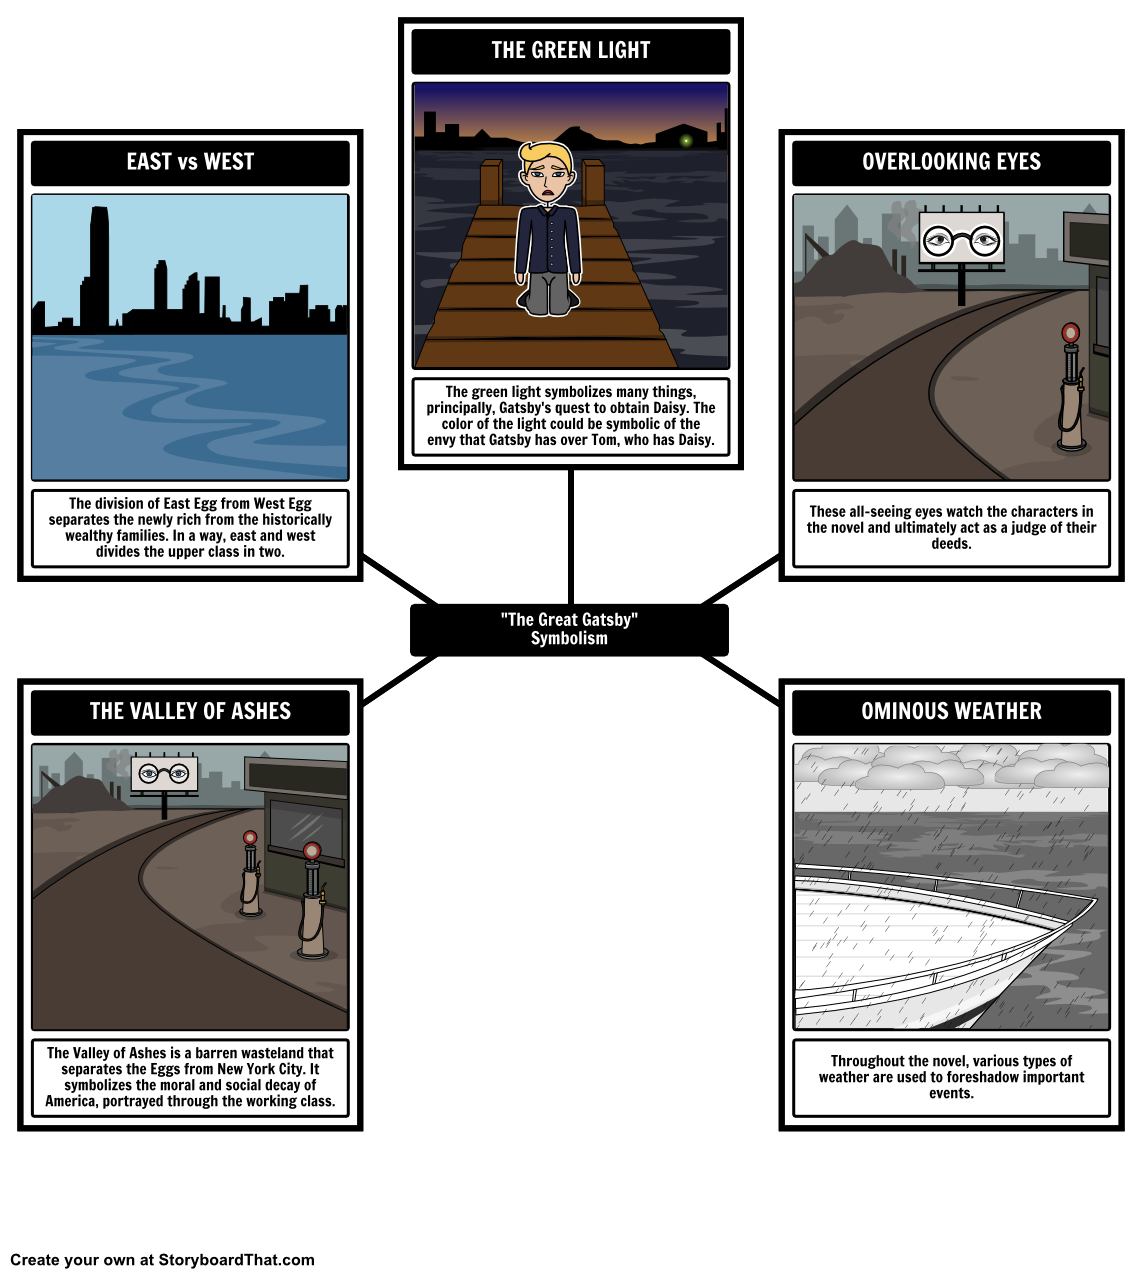 the great gatsby chapter ii about half way between west egg here is our symbolism storyboard for the great gatsby made using our new spider map layout